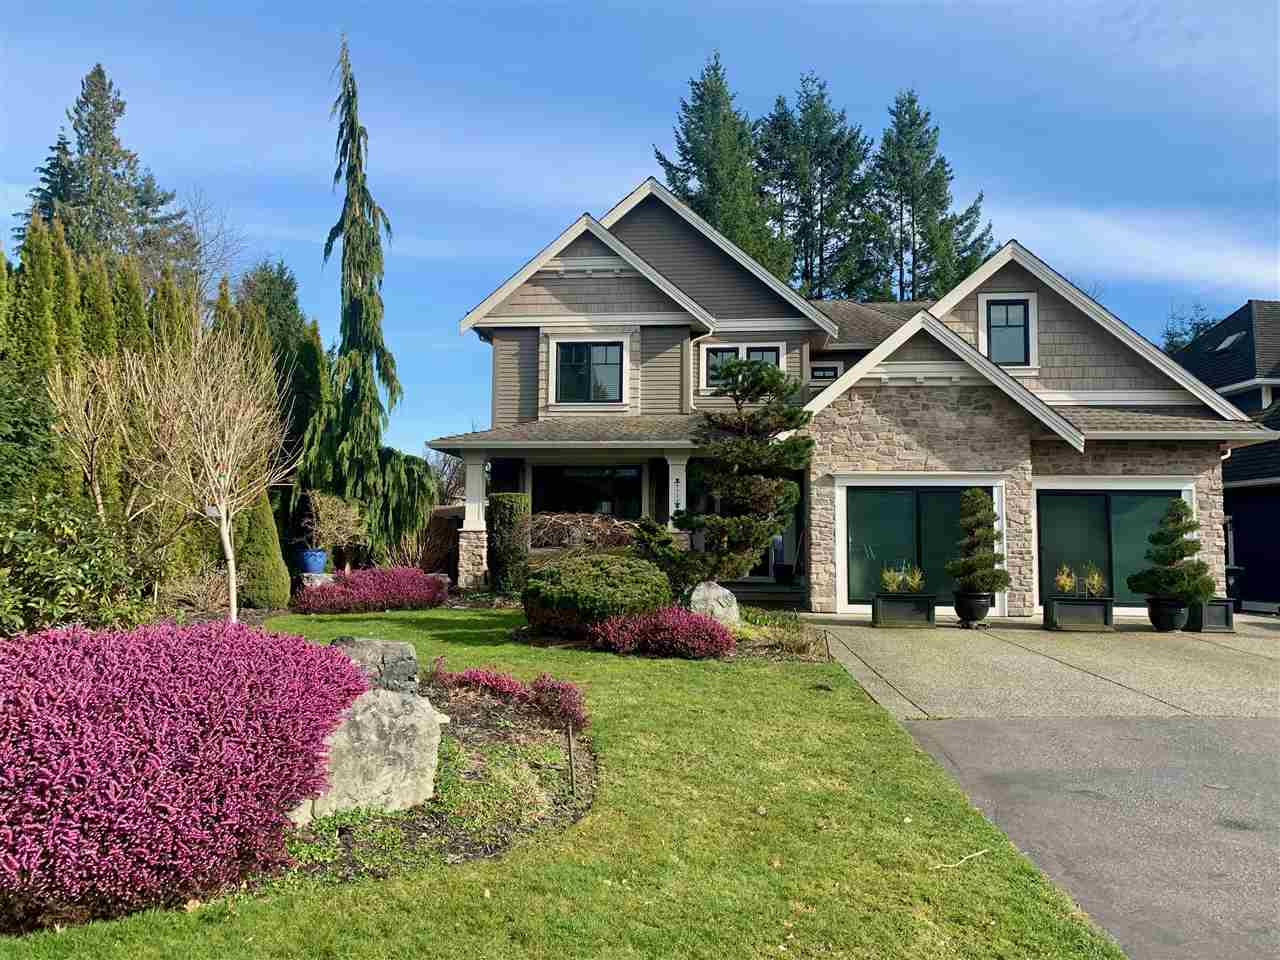 8924 TRATTLE STREET - Fort Langley House/Single Family for sale, 5 Bedrooms (R2550734) - #1